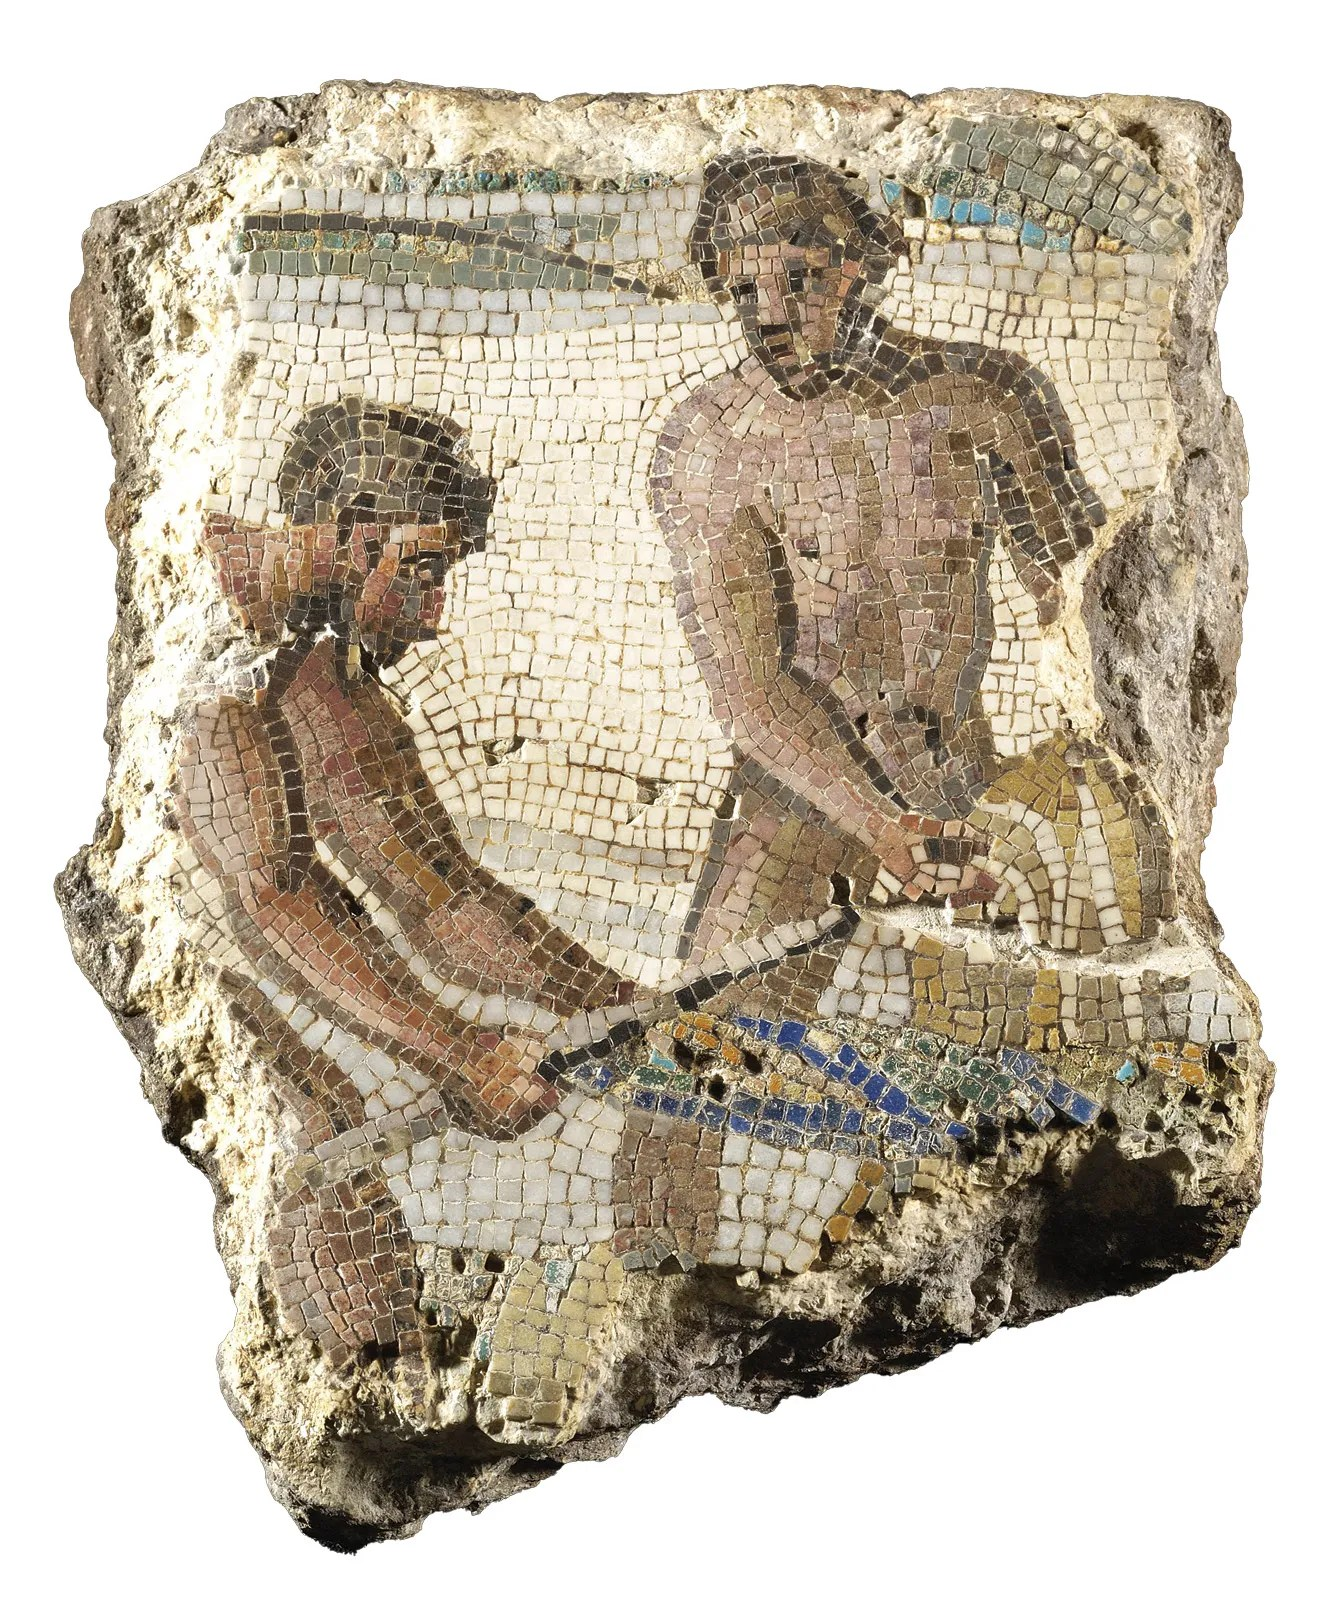 BELOW Polychrome mosaic showing fishermen at work, found in 1875 between the Via Labicana and Via Merulana in Rome. Late 1st / early 2nd century AD.